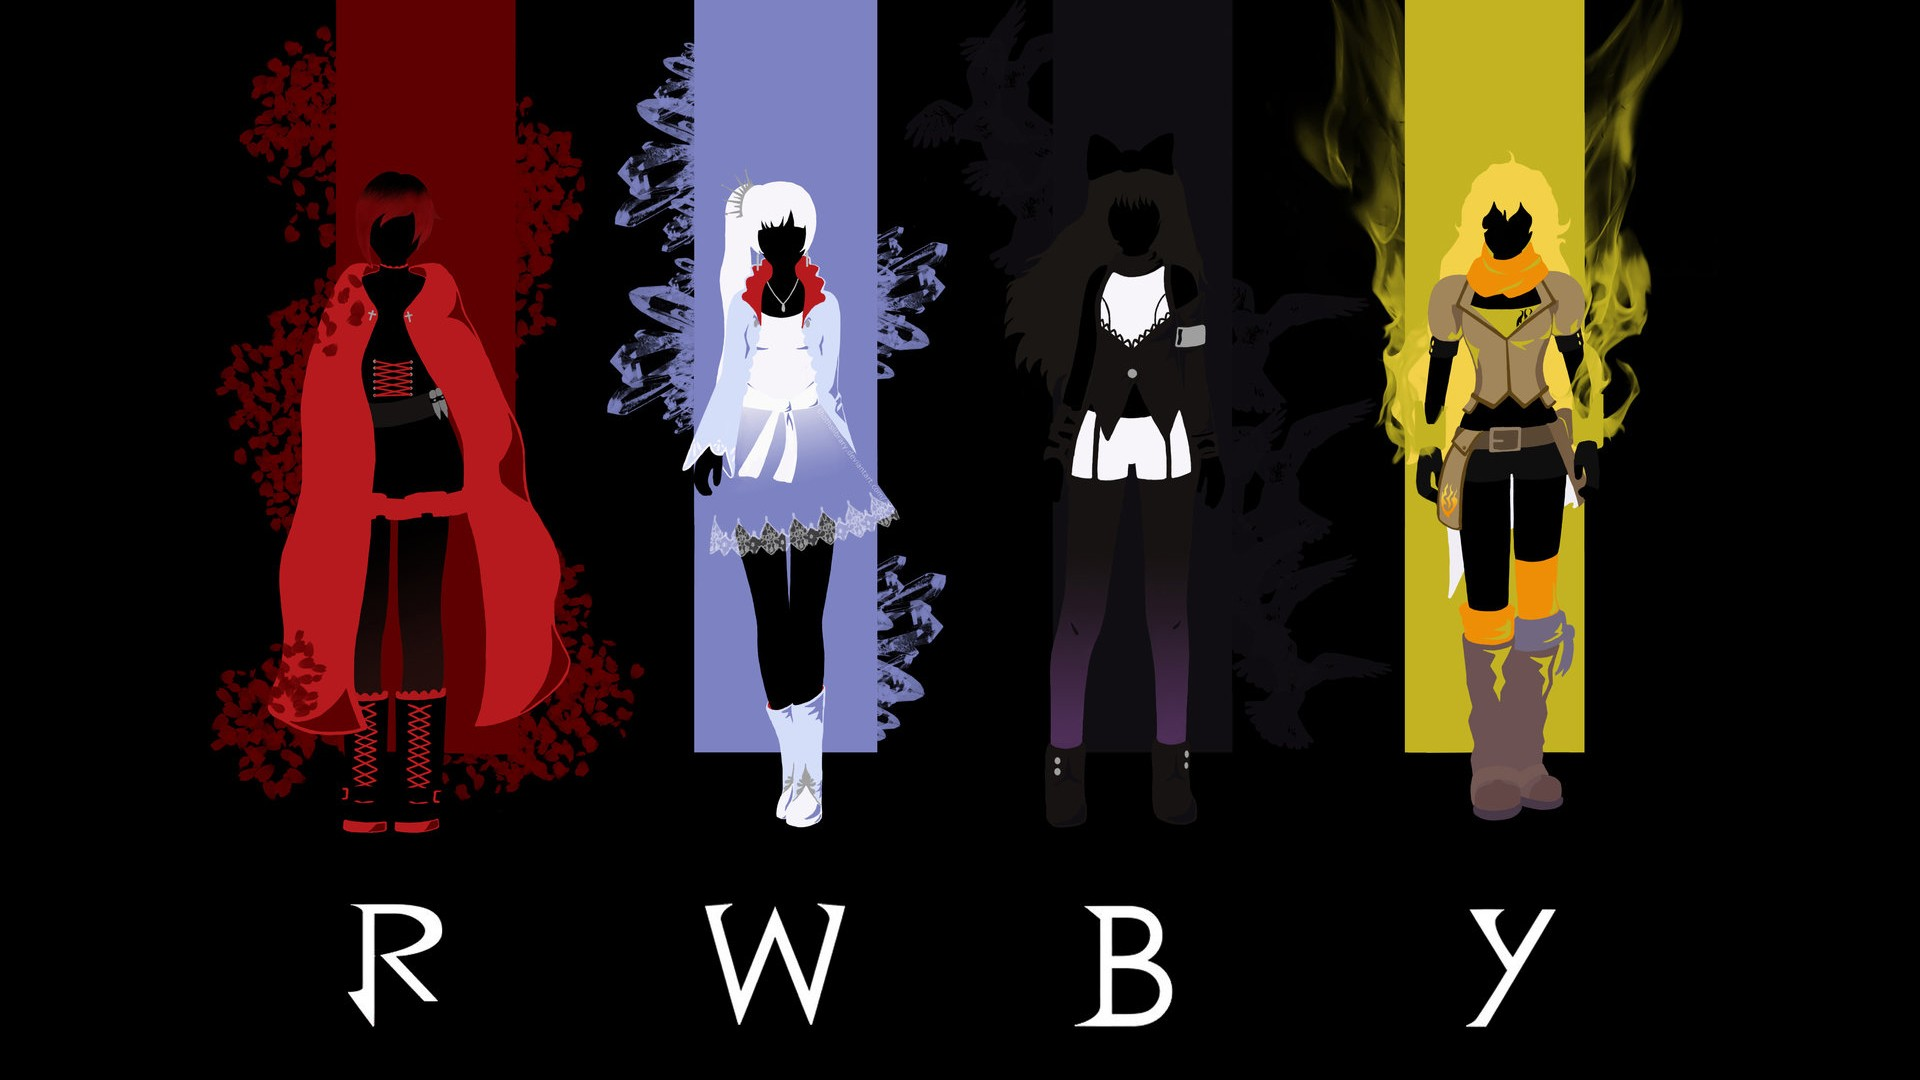 Q-Taku: Animesque Web Series RWBY is Everything Wrong With